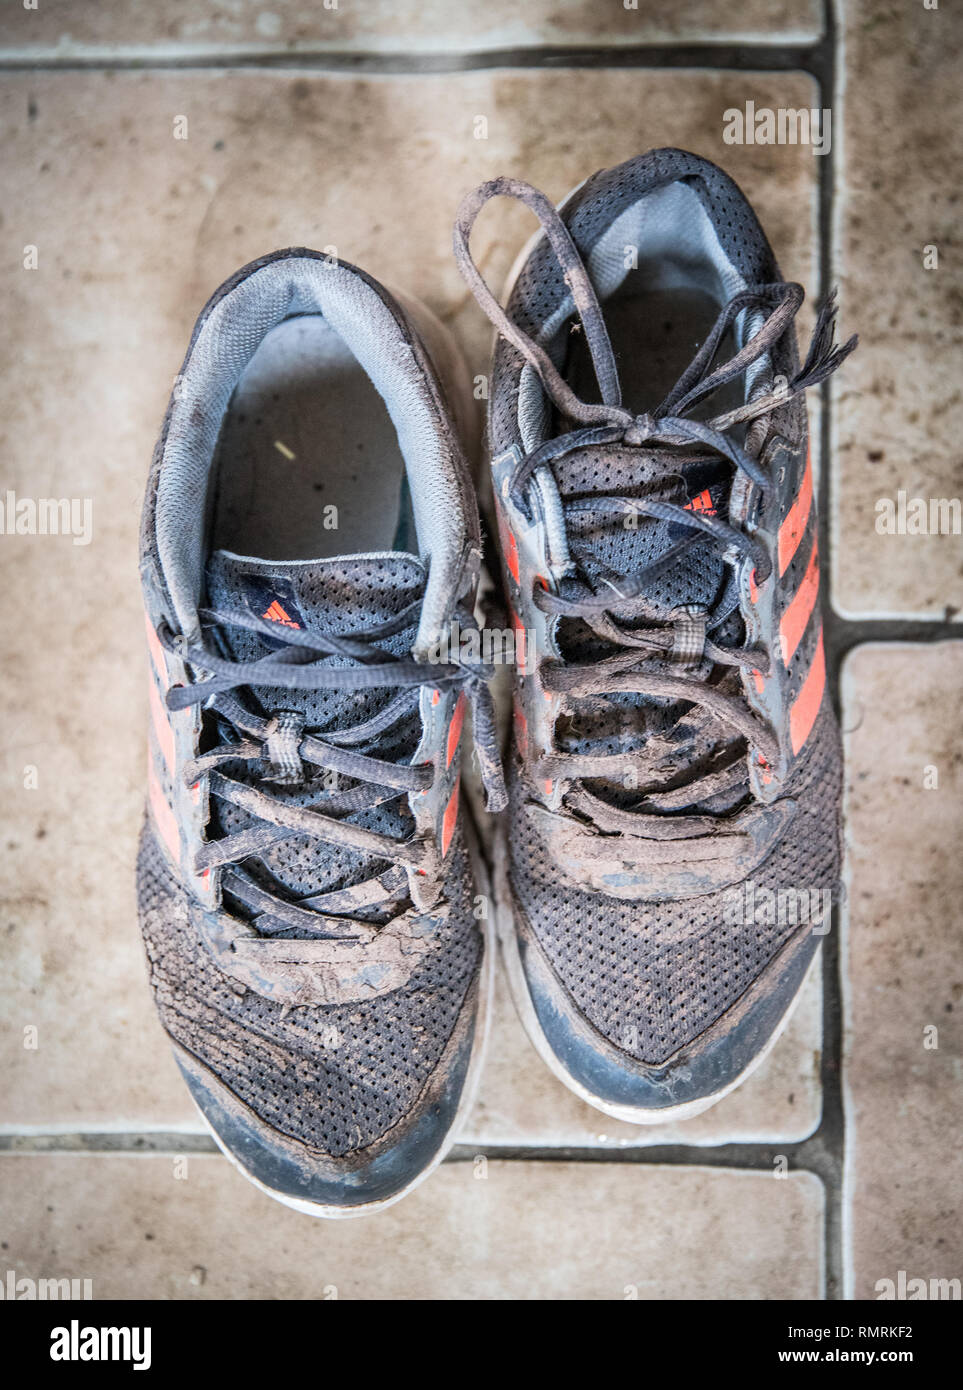 Vertical shot of a diry worn out pair of muddy trainers sneakers shoes, - Stock Image